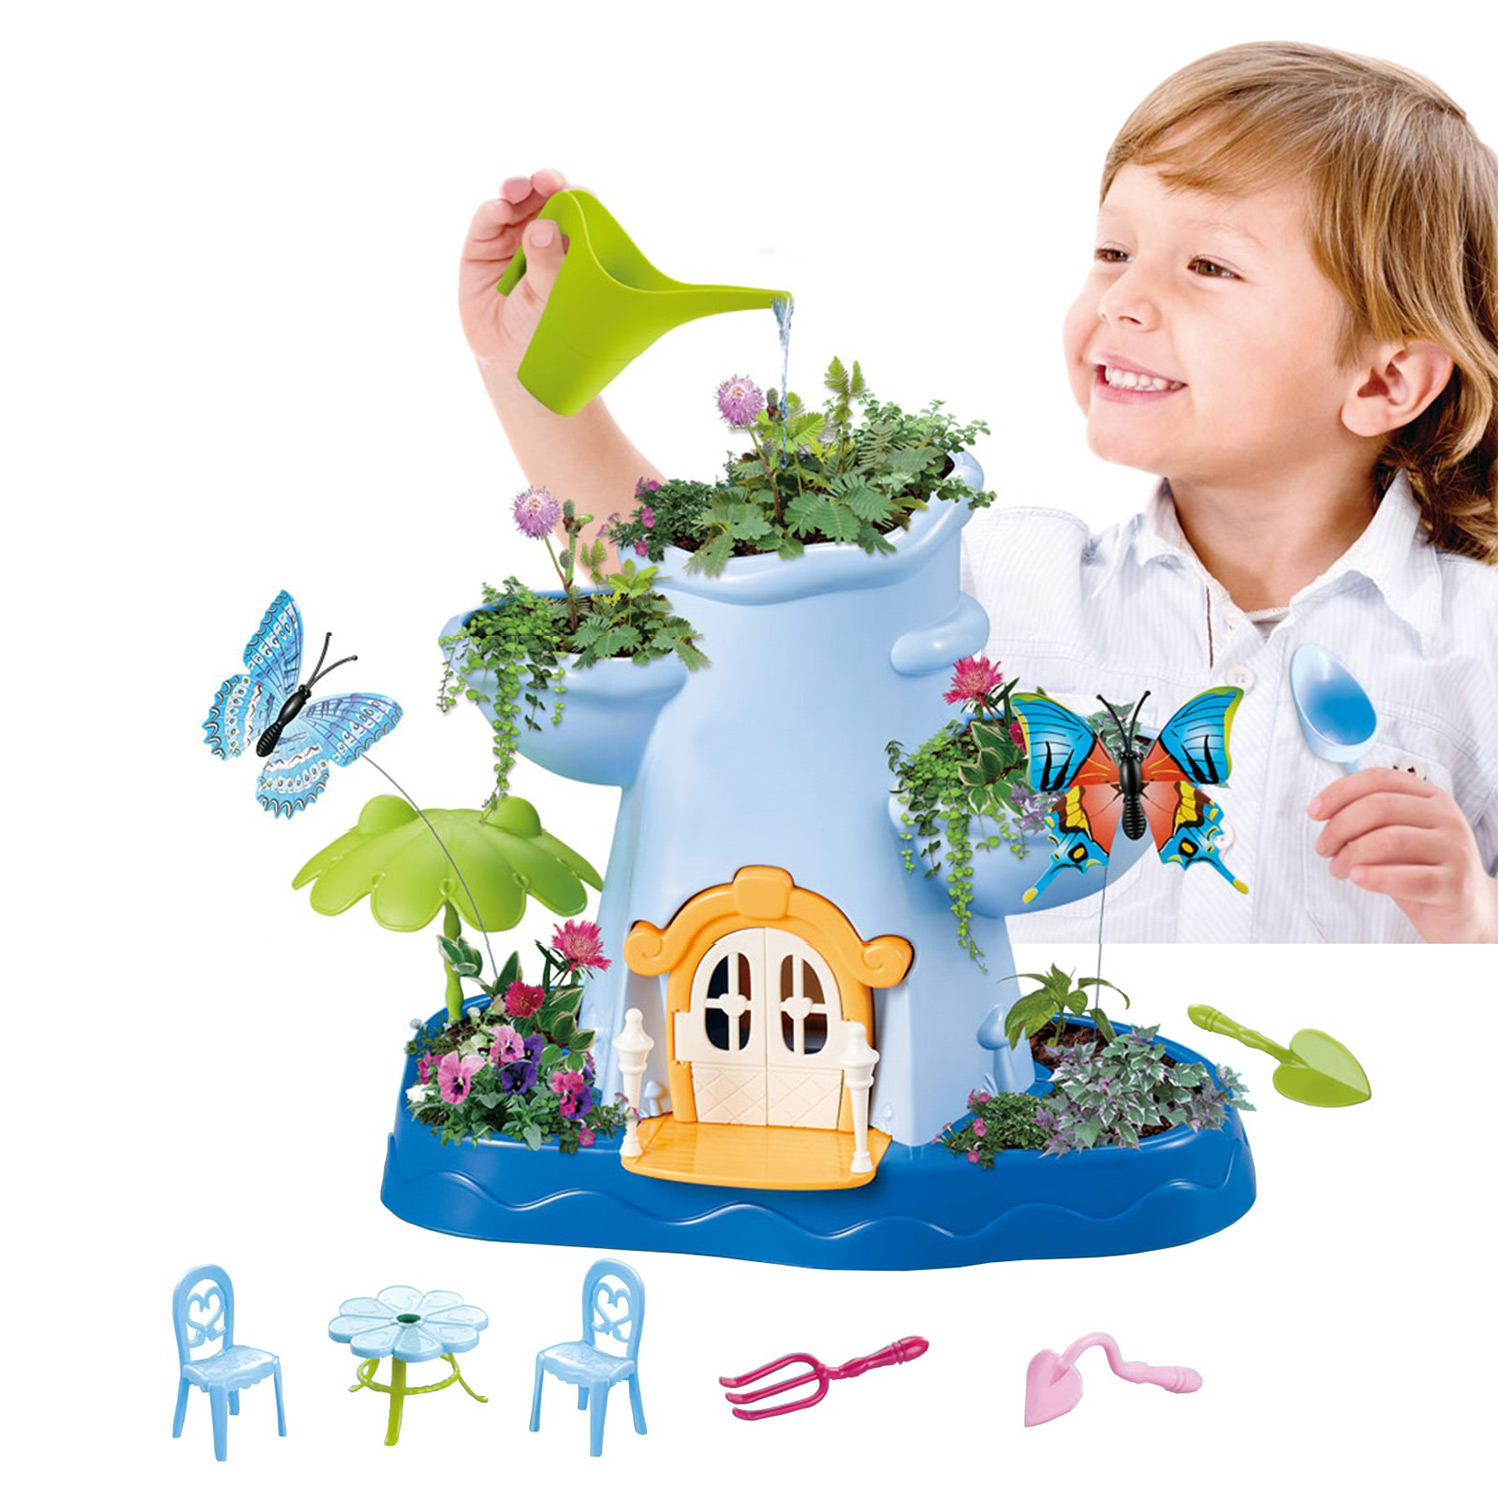 Kids Magical Garden Growing Kit Includes Everything You Need Tools Flower Plant Tree Interactive Play Fairy Toys Inspires Learning Gardening and Horticulture Educational Perfect For Children Girls Boys